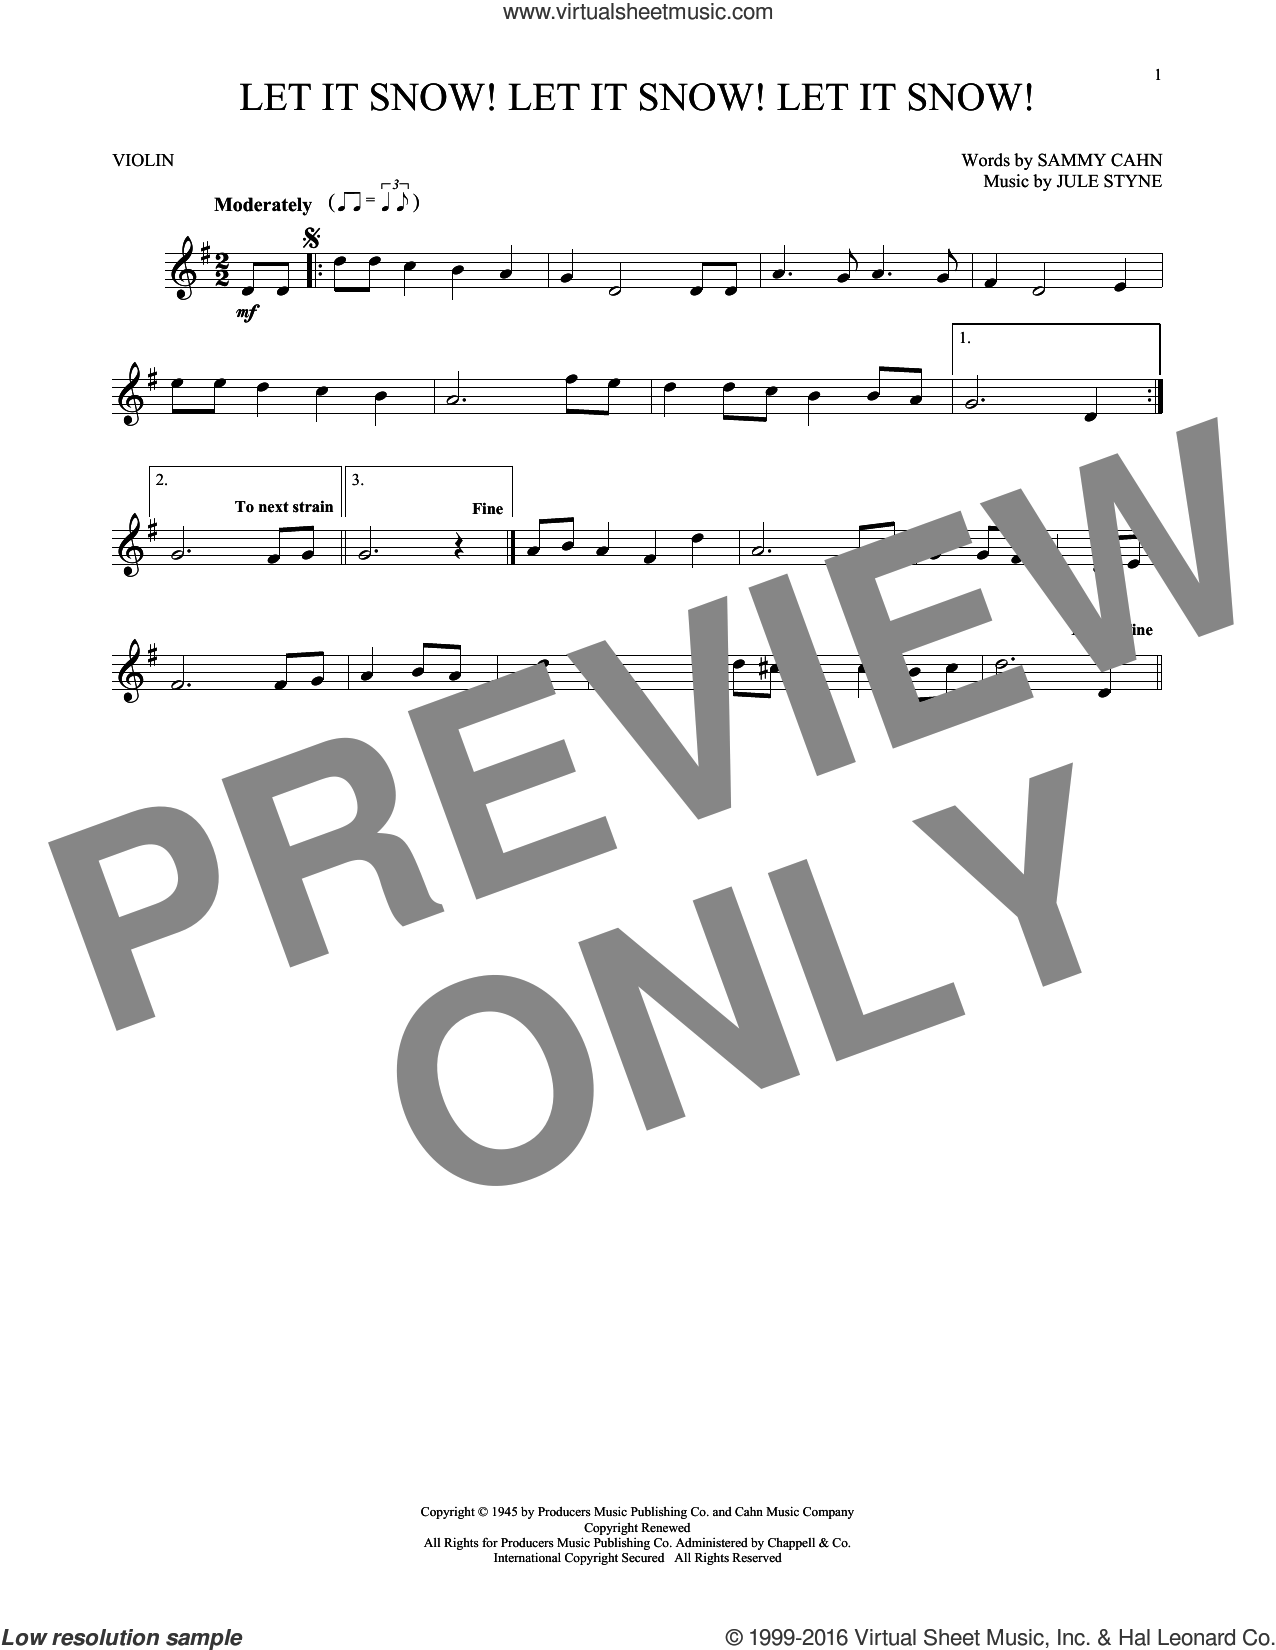 Let It Snow! Let It Snow! Let It Snow! sheet music for violin solo by Sammy Cahn and Jule Styne. Score Image Preview.